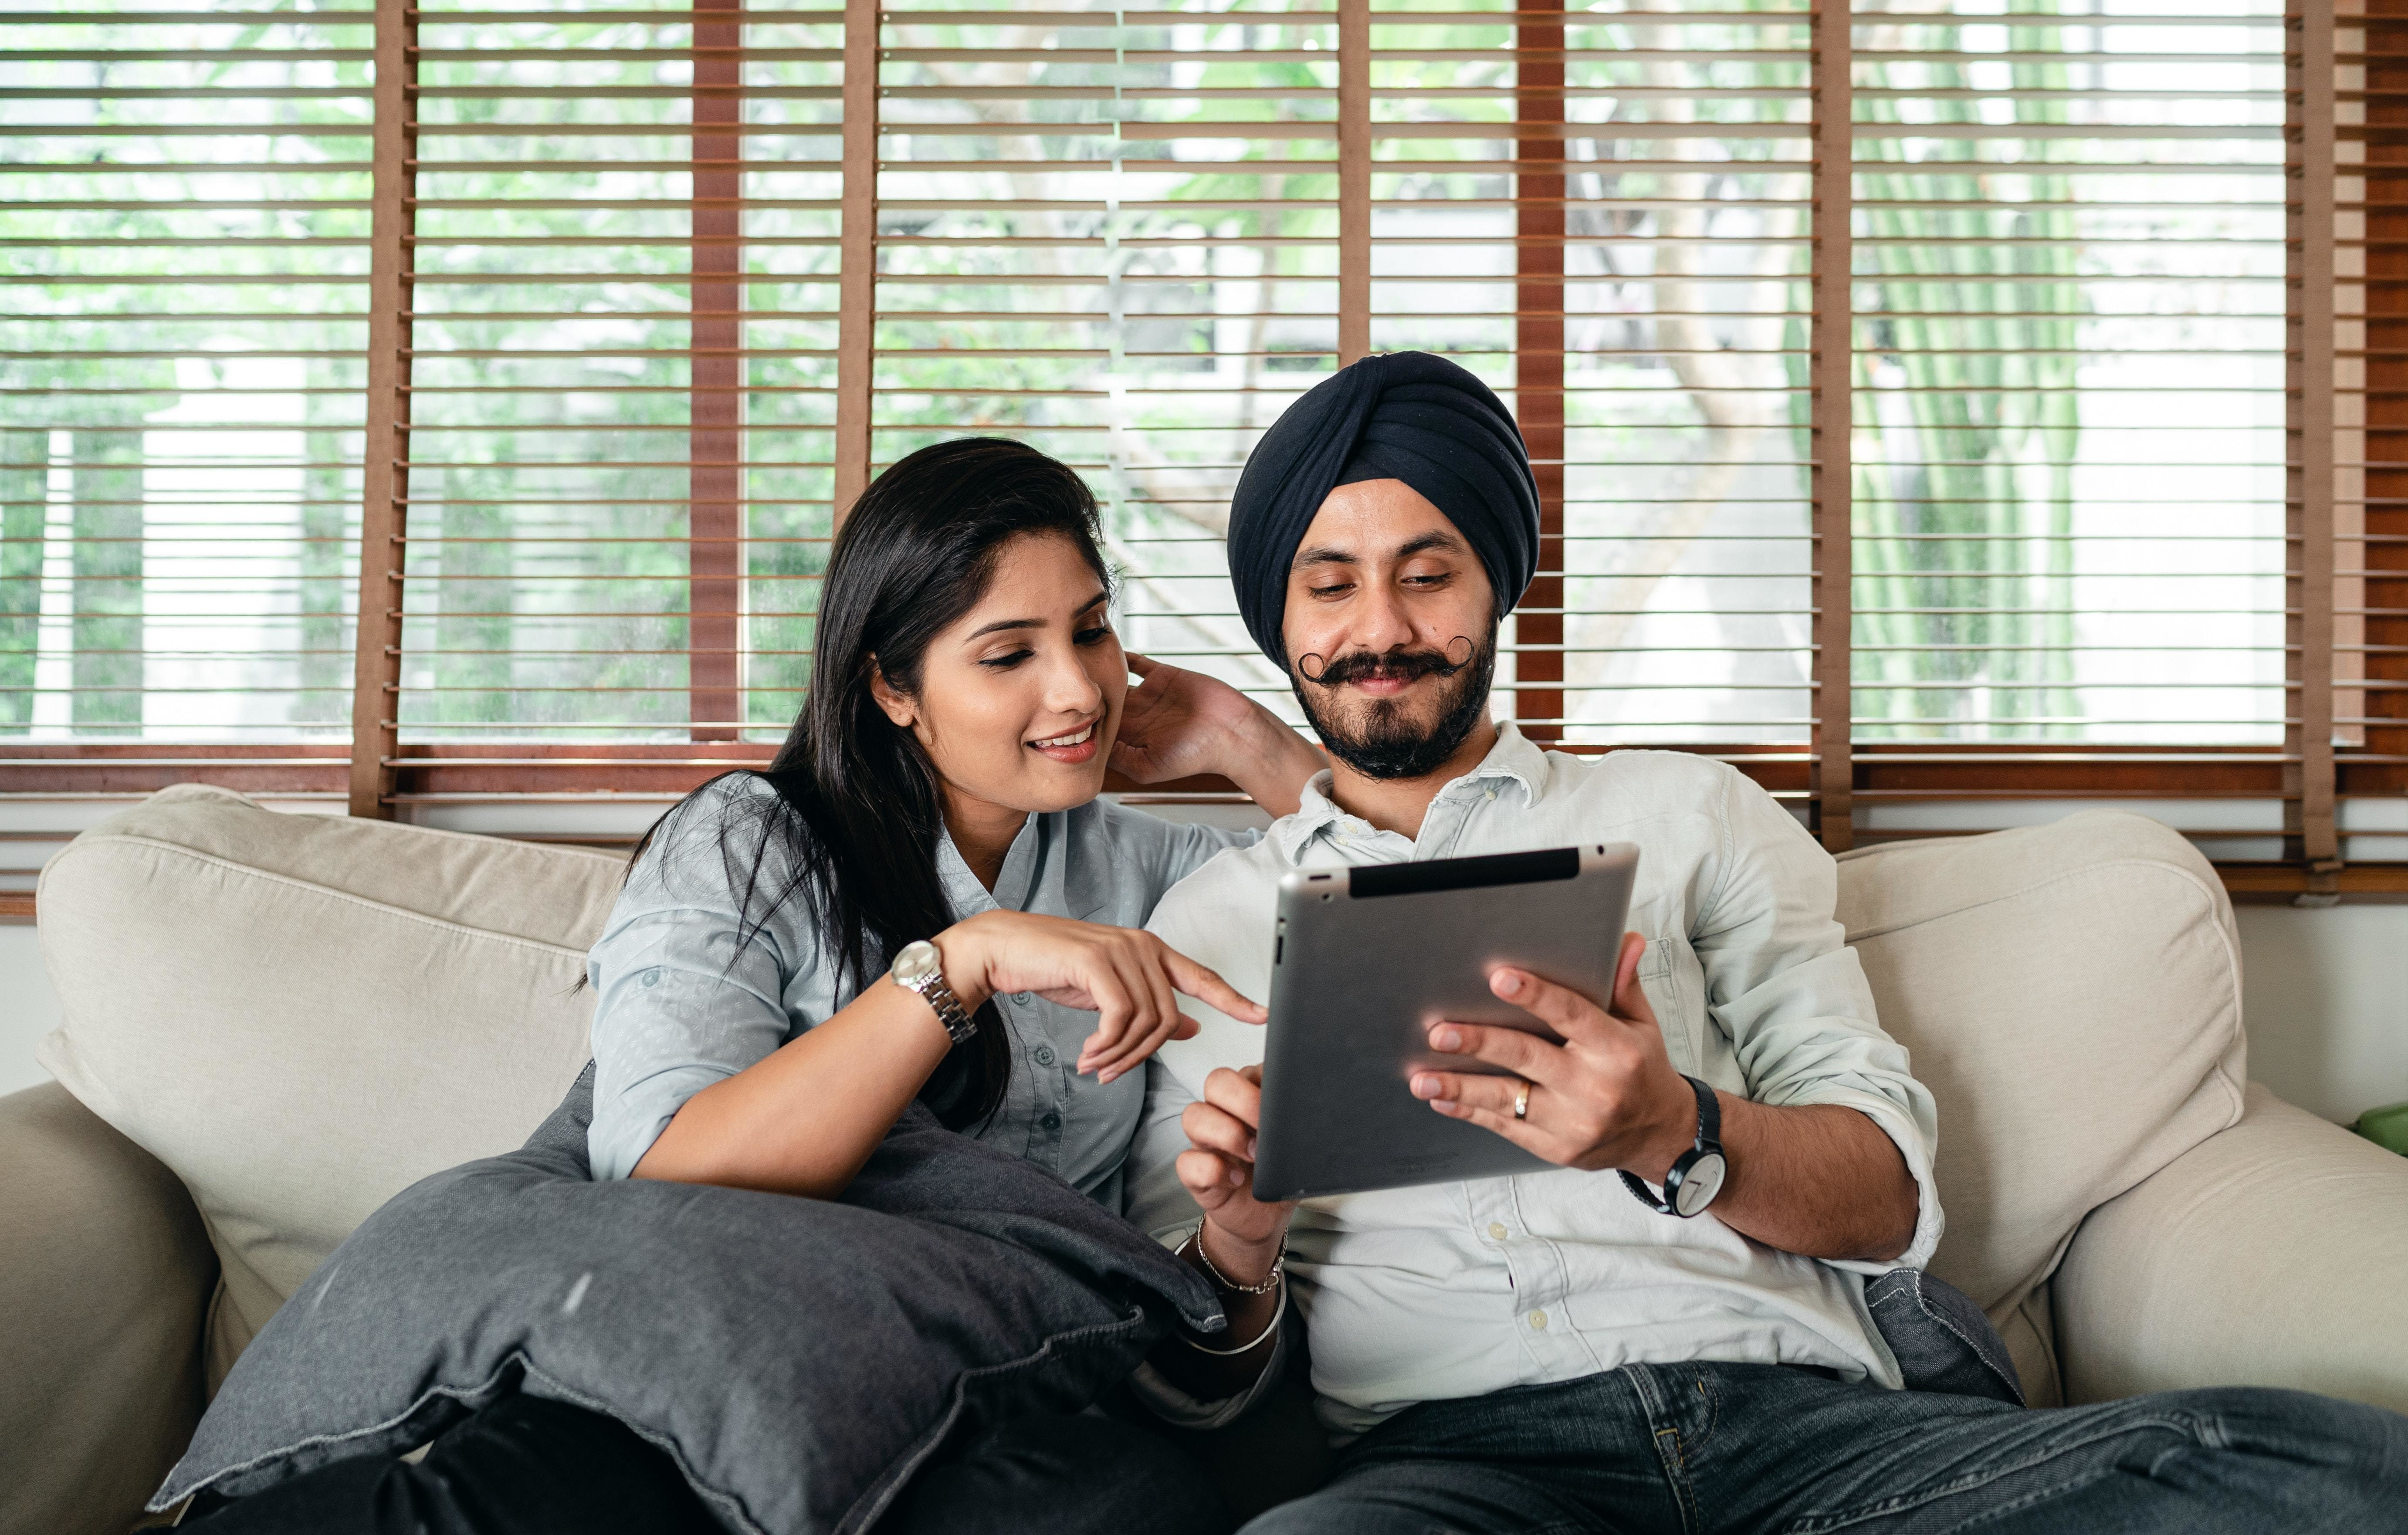 Indian man and women sitting on sofa while looking at electronic tablet.